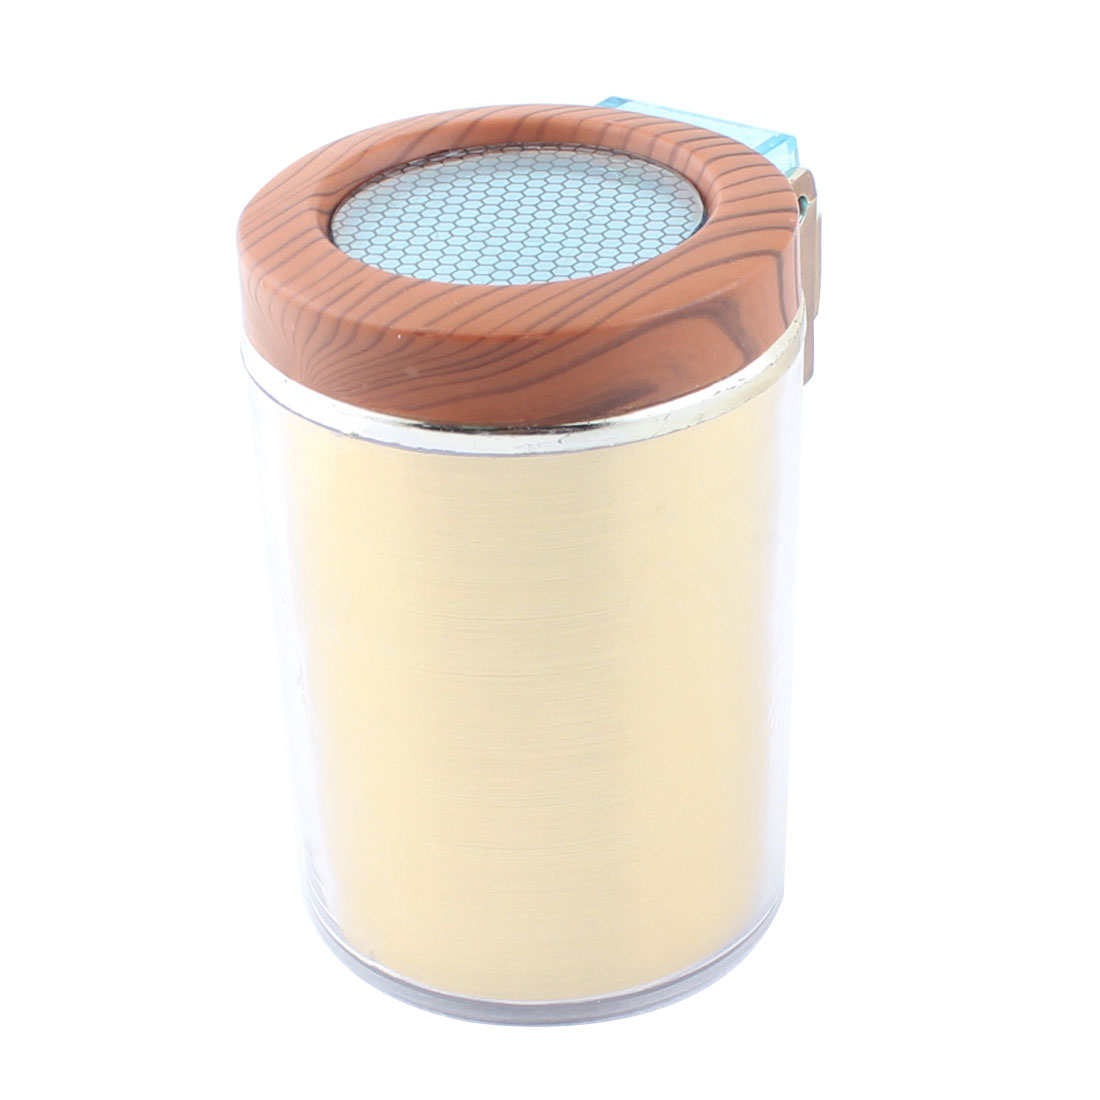 Car Plastic Cylinder Shape Ash Container Box LED Light Ashtray Gold Tone